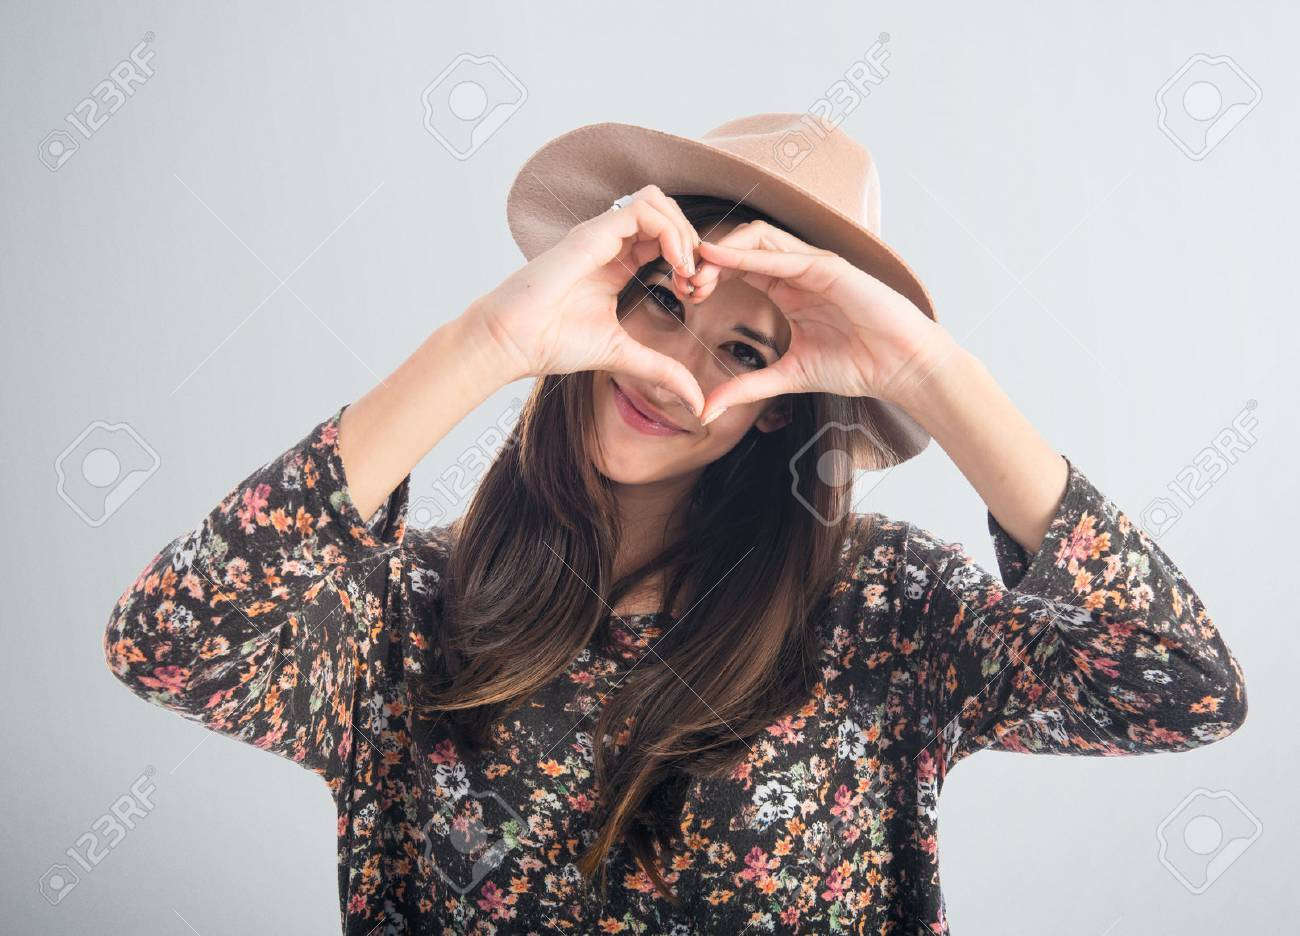 Woman making a heart with her hands Stock Photo - 43945181